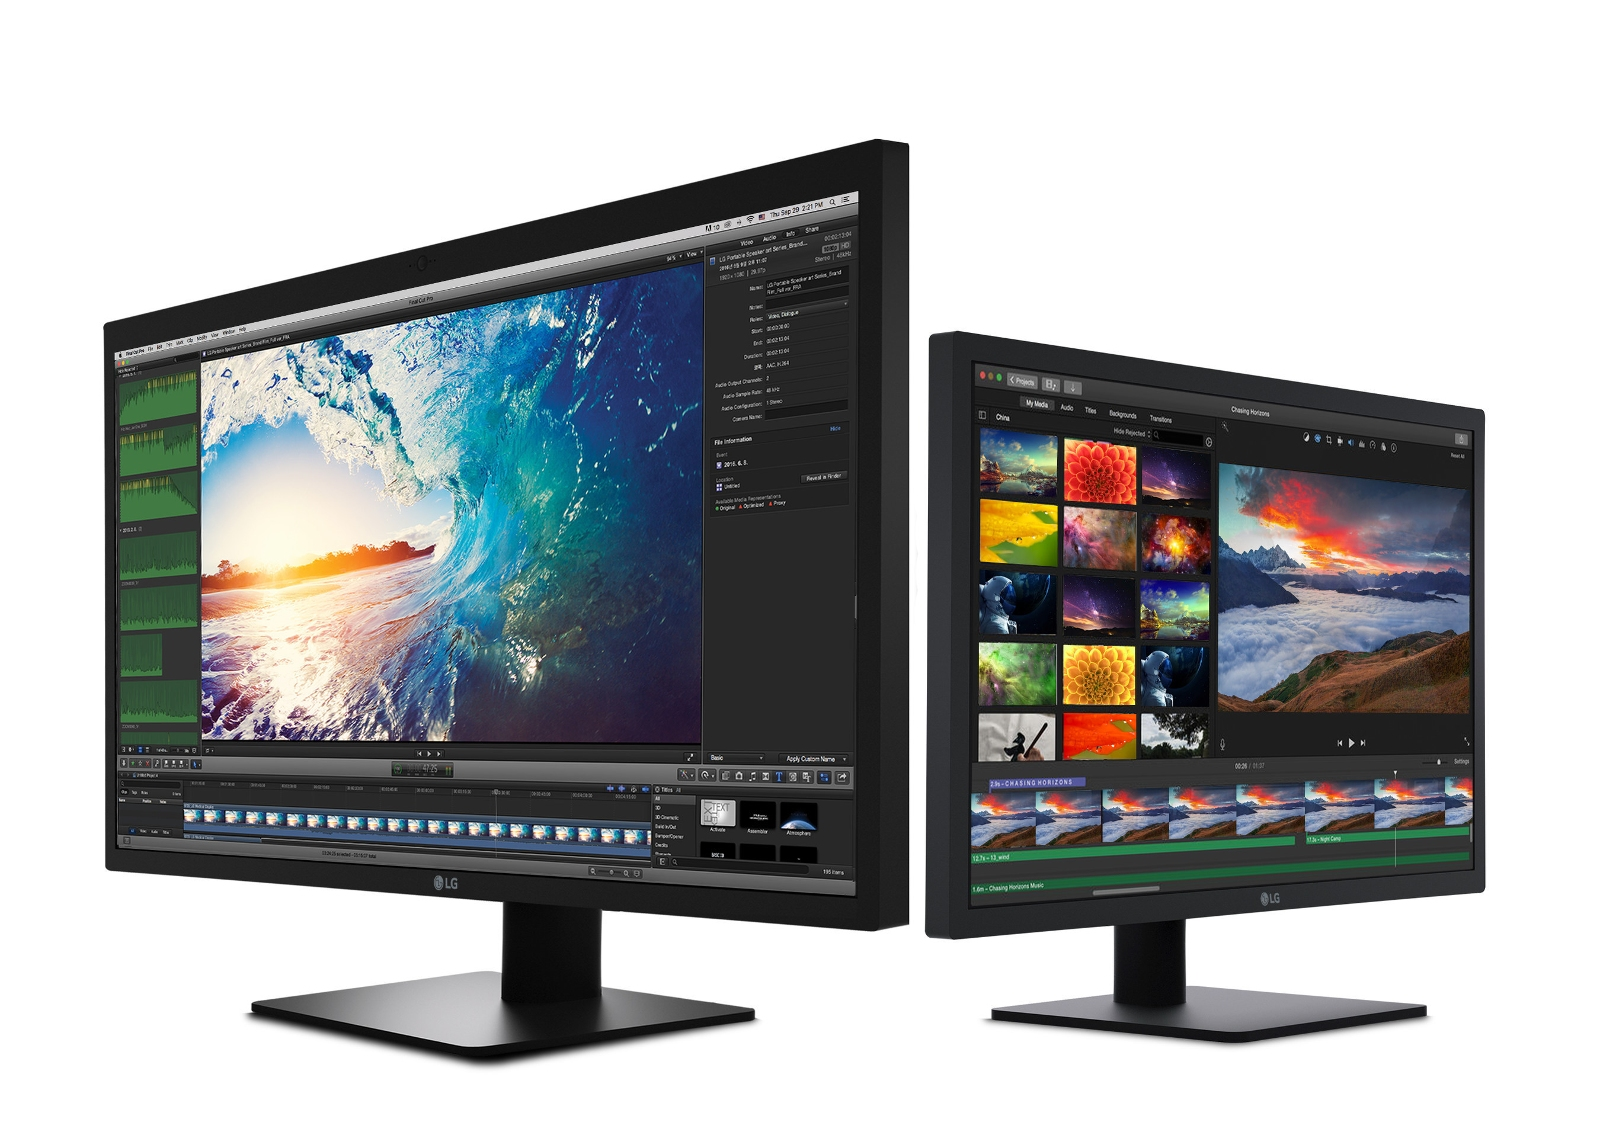 LG UltraFine 5K/4K Displays Designed For Ultimate Mac User Experience